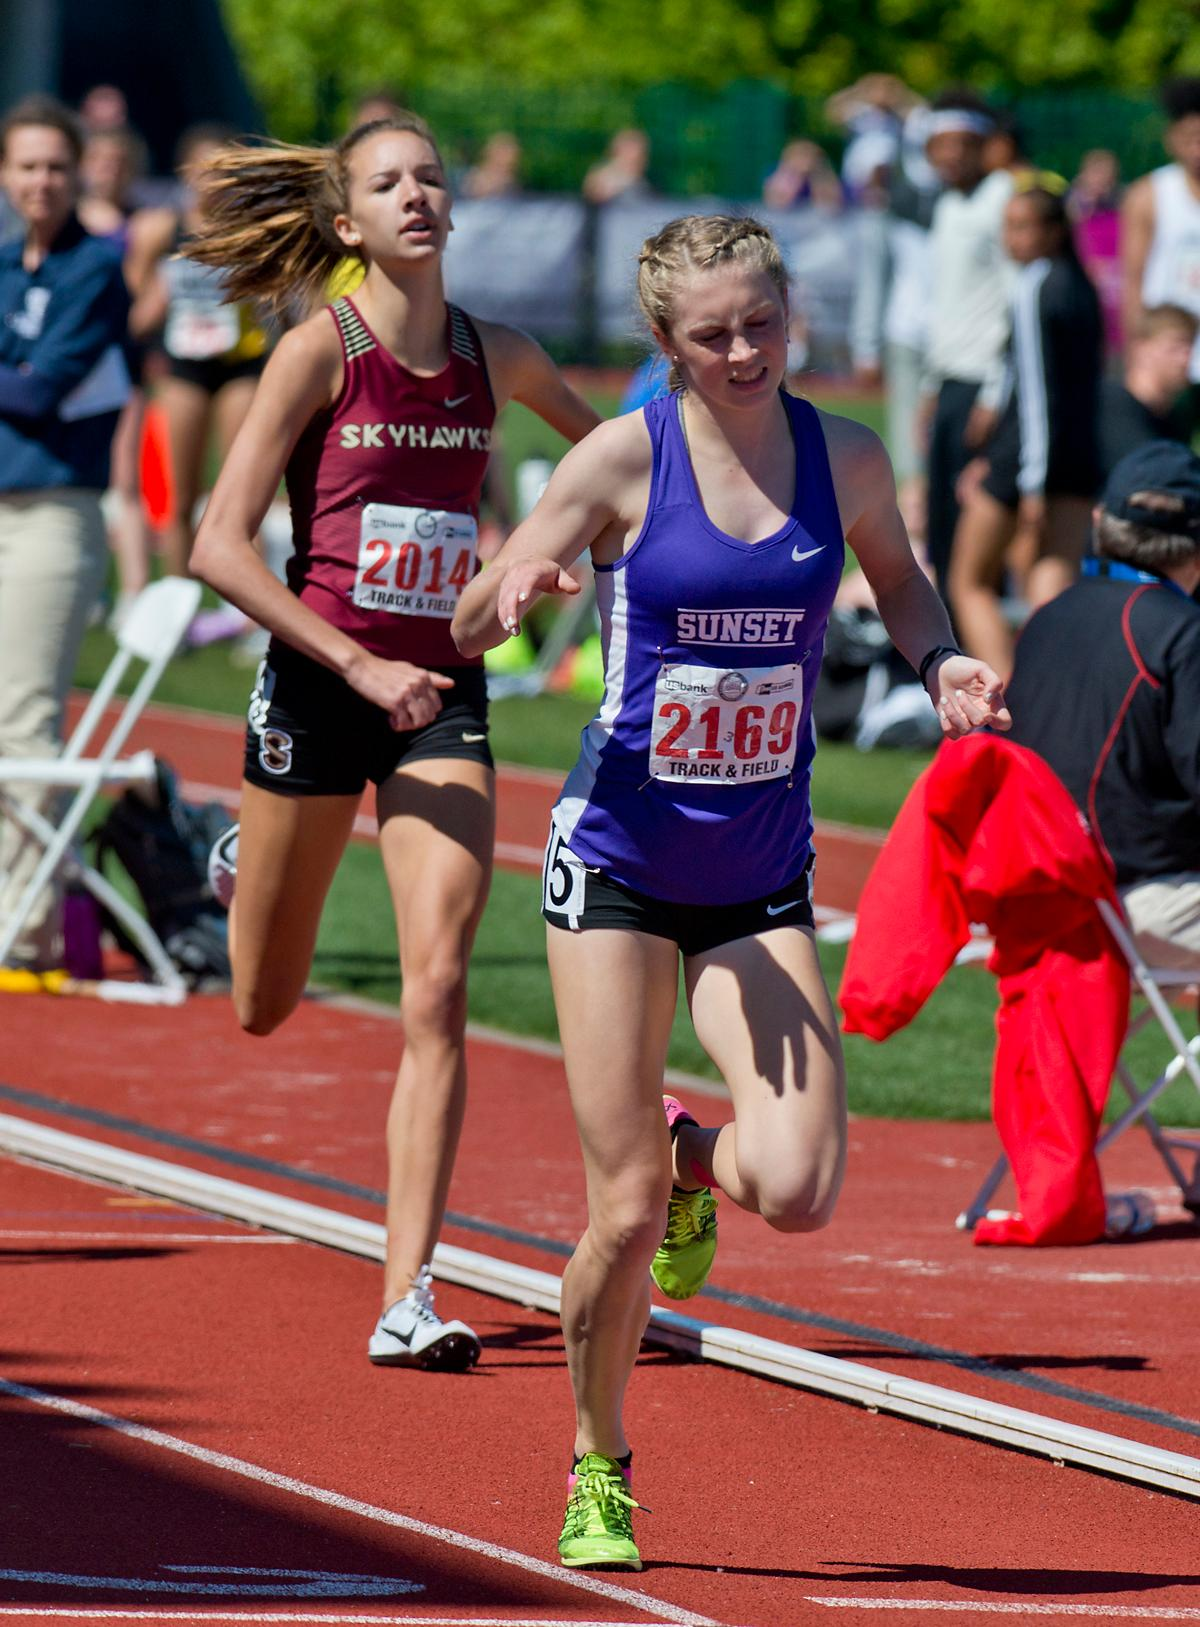 Kelly Makin from Sunset wins the 6A Girls 800 meter Run with a time of 2:10.99 at the OSAA Championship at Hayward Field on Saturday. Photo by Dan Morrison, Oregon News Lab